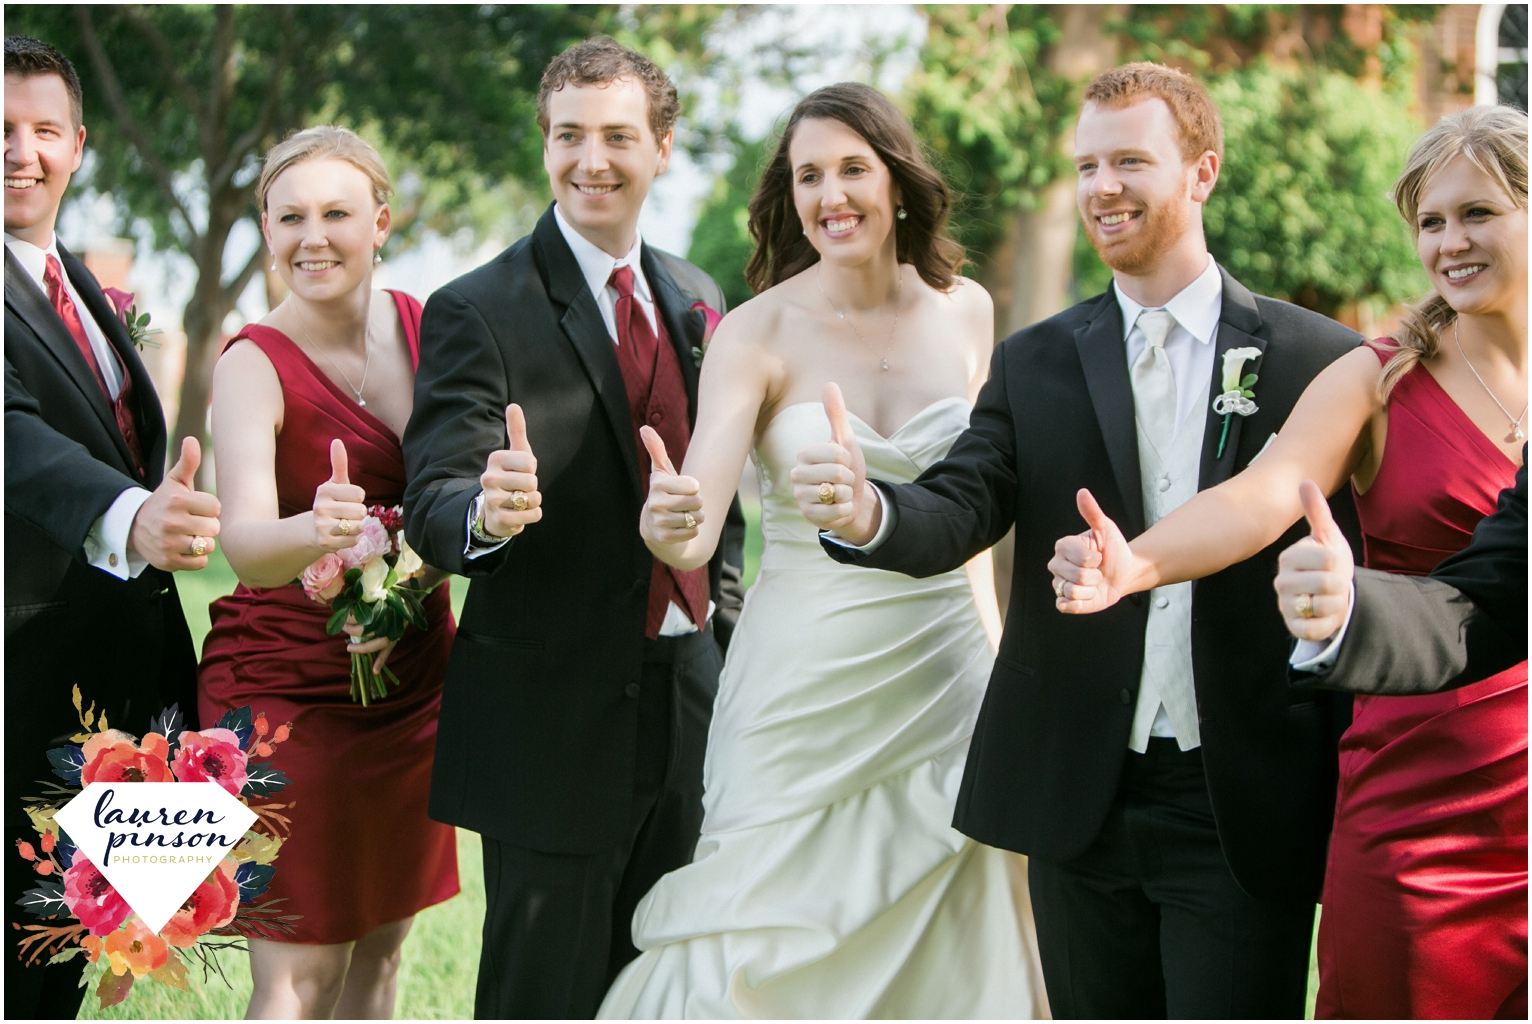 wichita-falls-wedding-photographer-OUR-Lady-queen-of-peace-catholic-wedding-the-forum-photography_0941.jpg